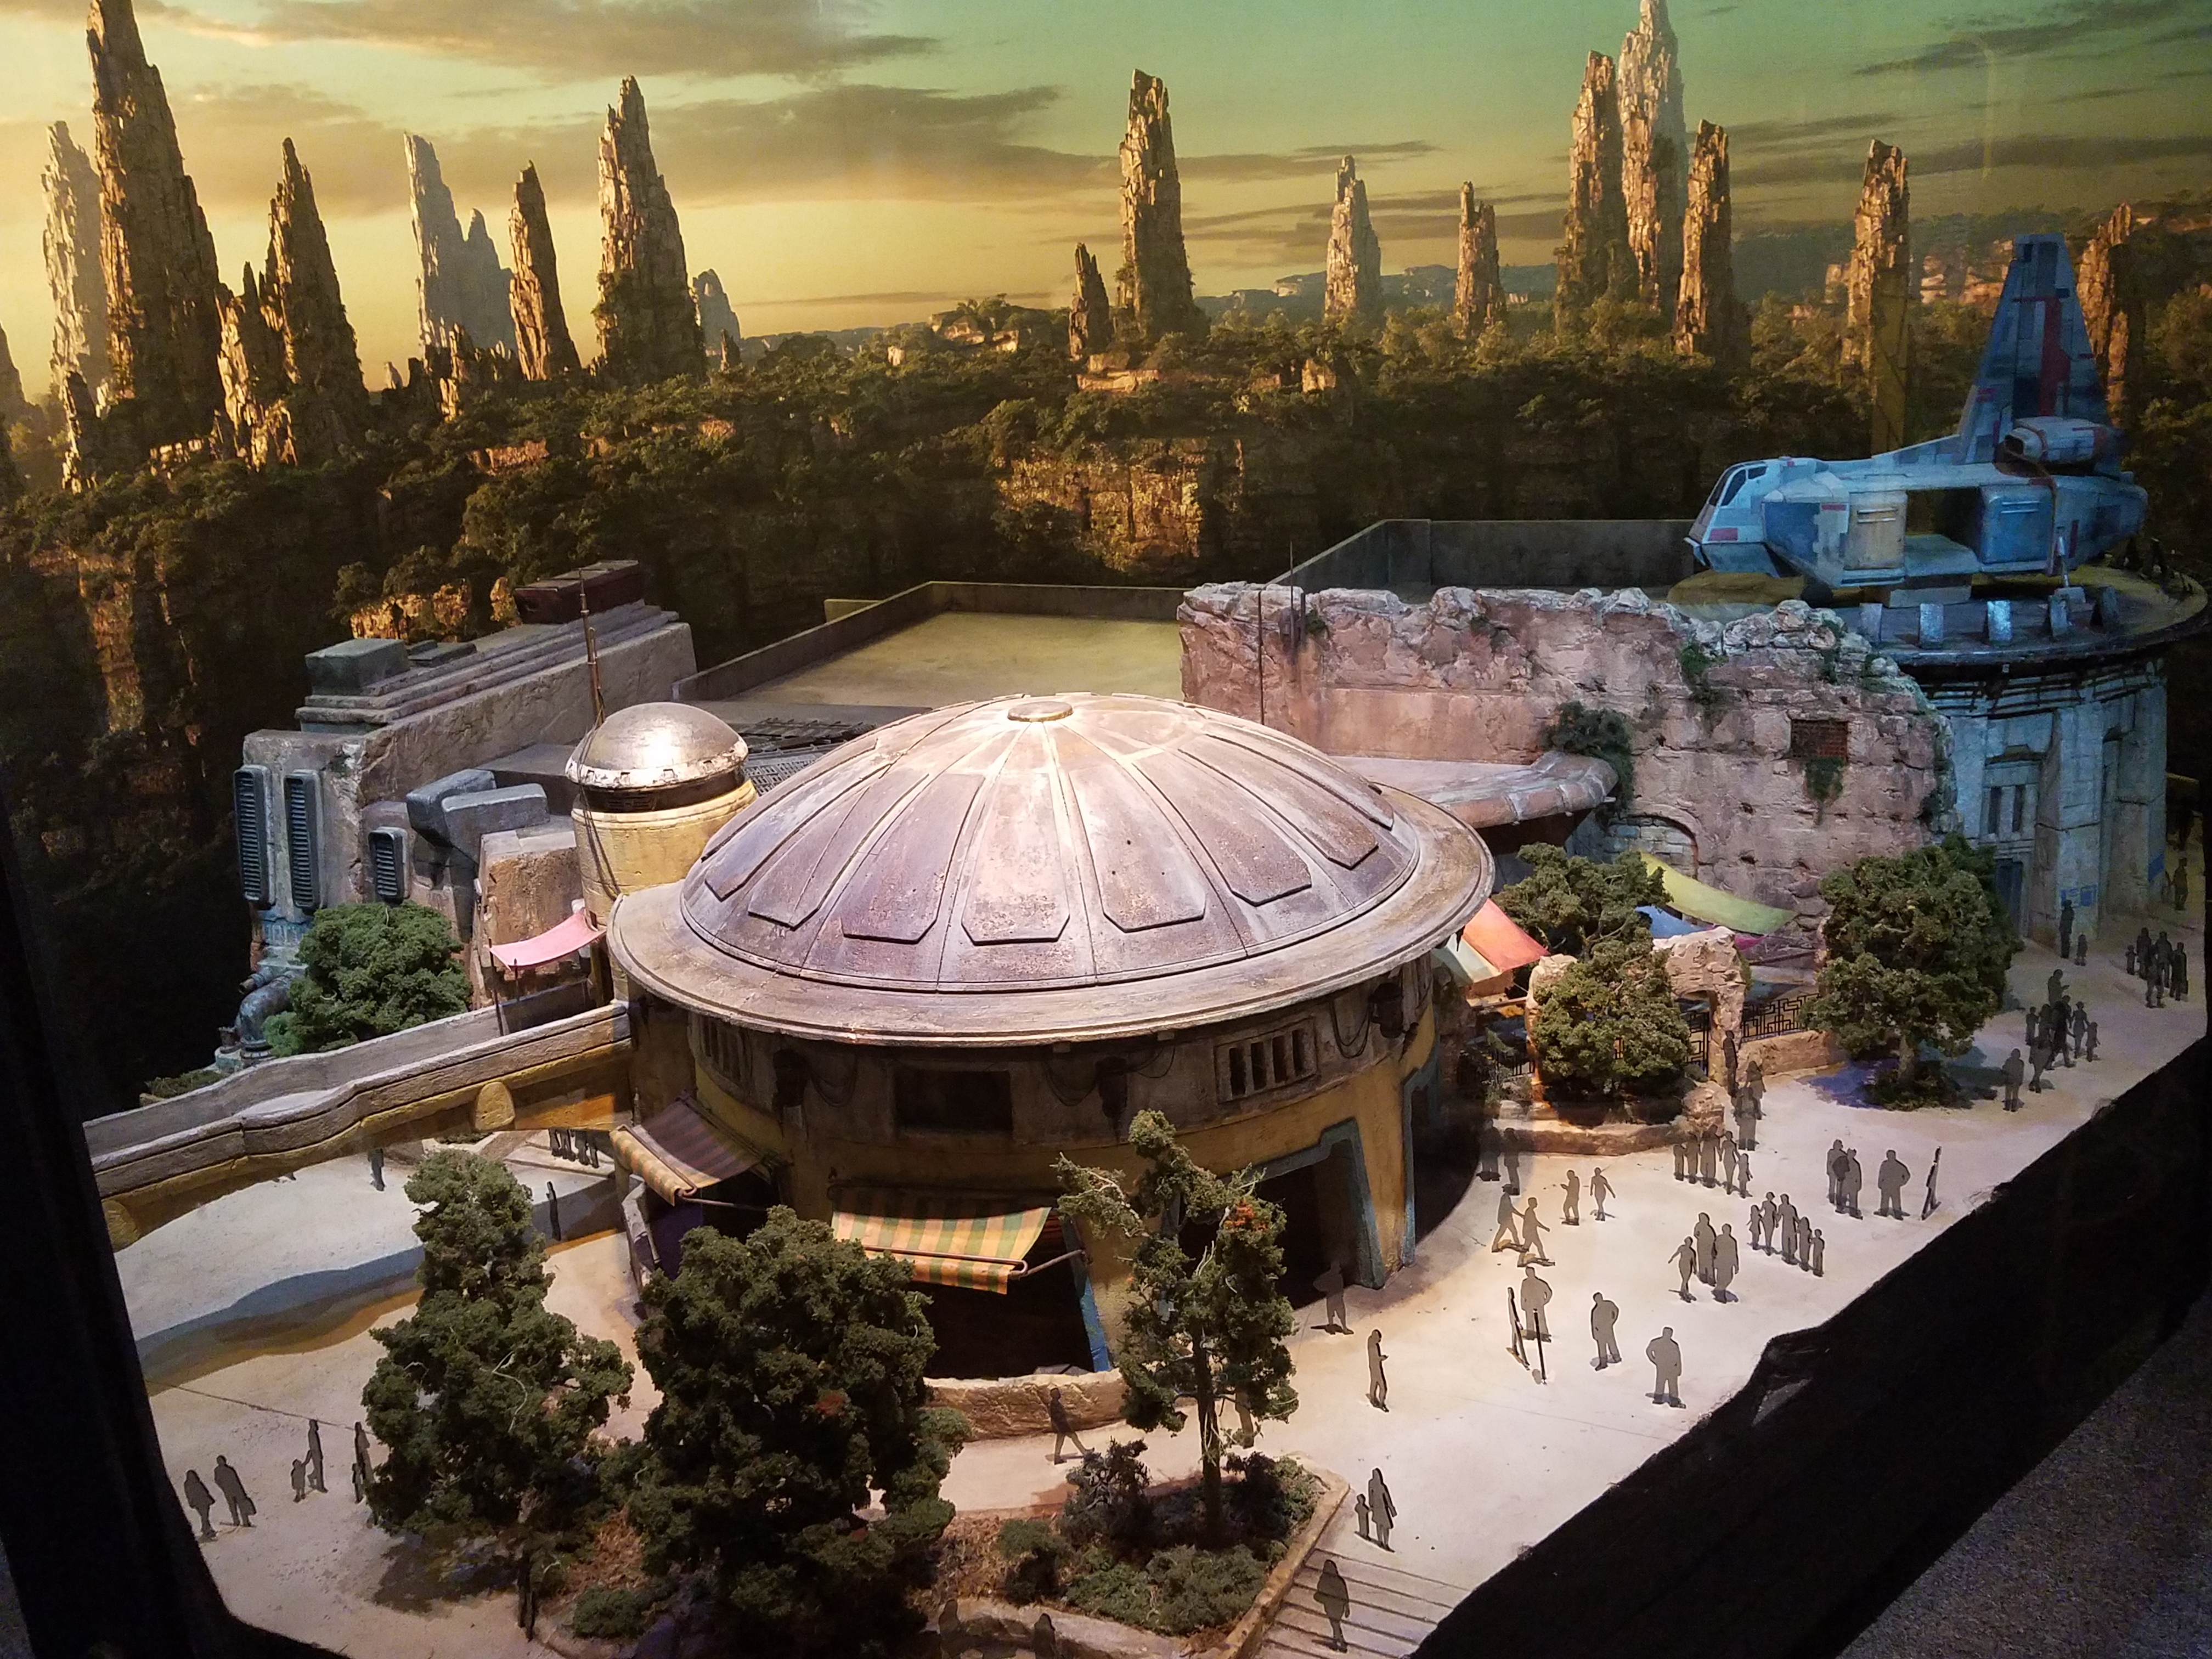 The Dome-Shaped Building Reminds Us of Tatooine Somehow